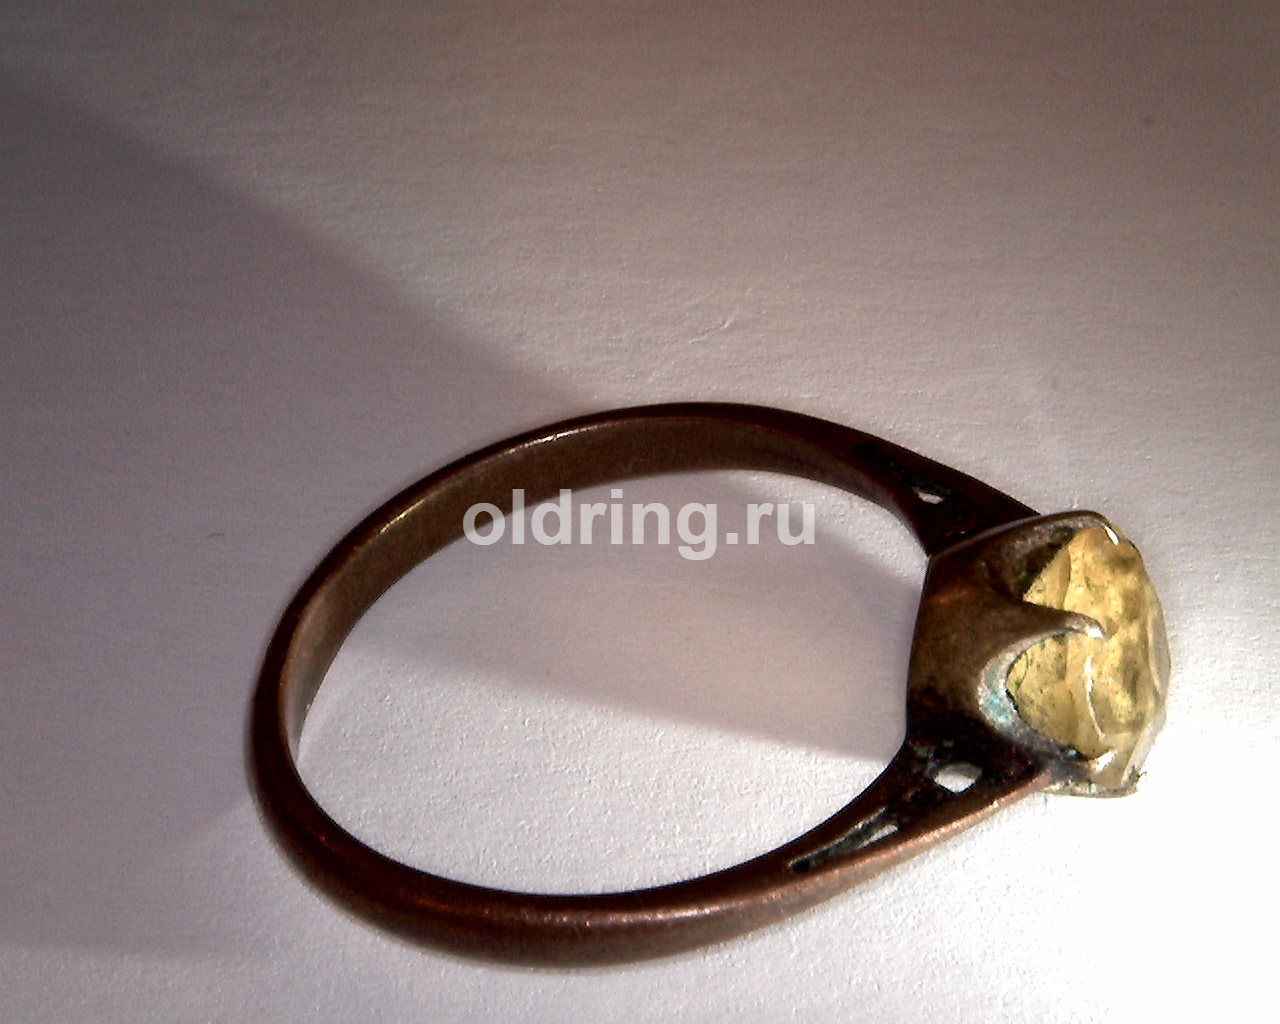 copper_ring_russ_samotsvety